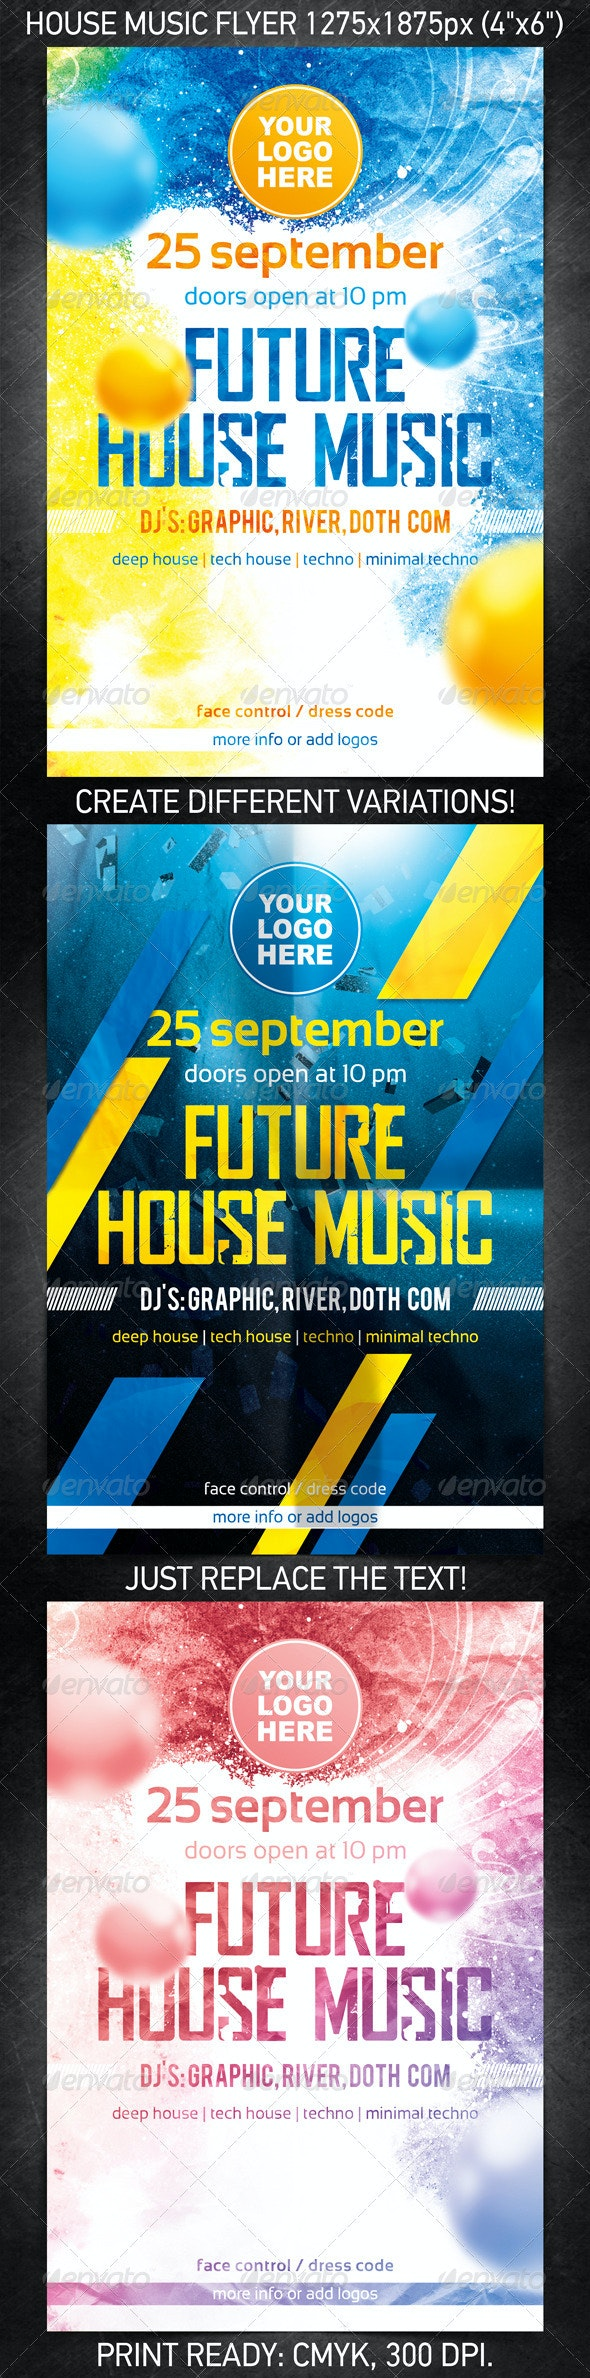 Future House Music Flyer - Clubs & Parties Events